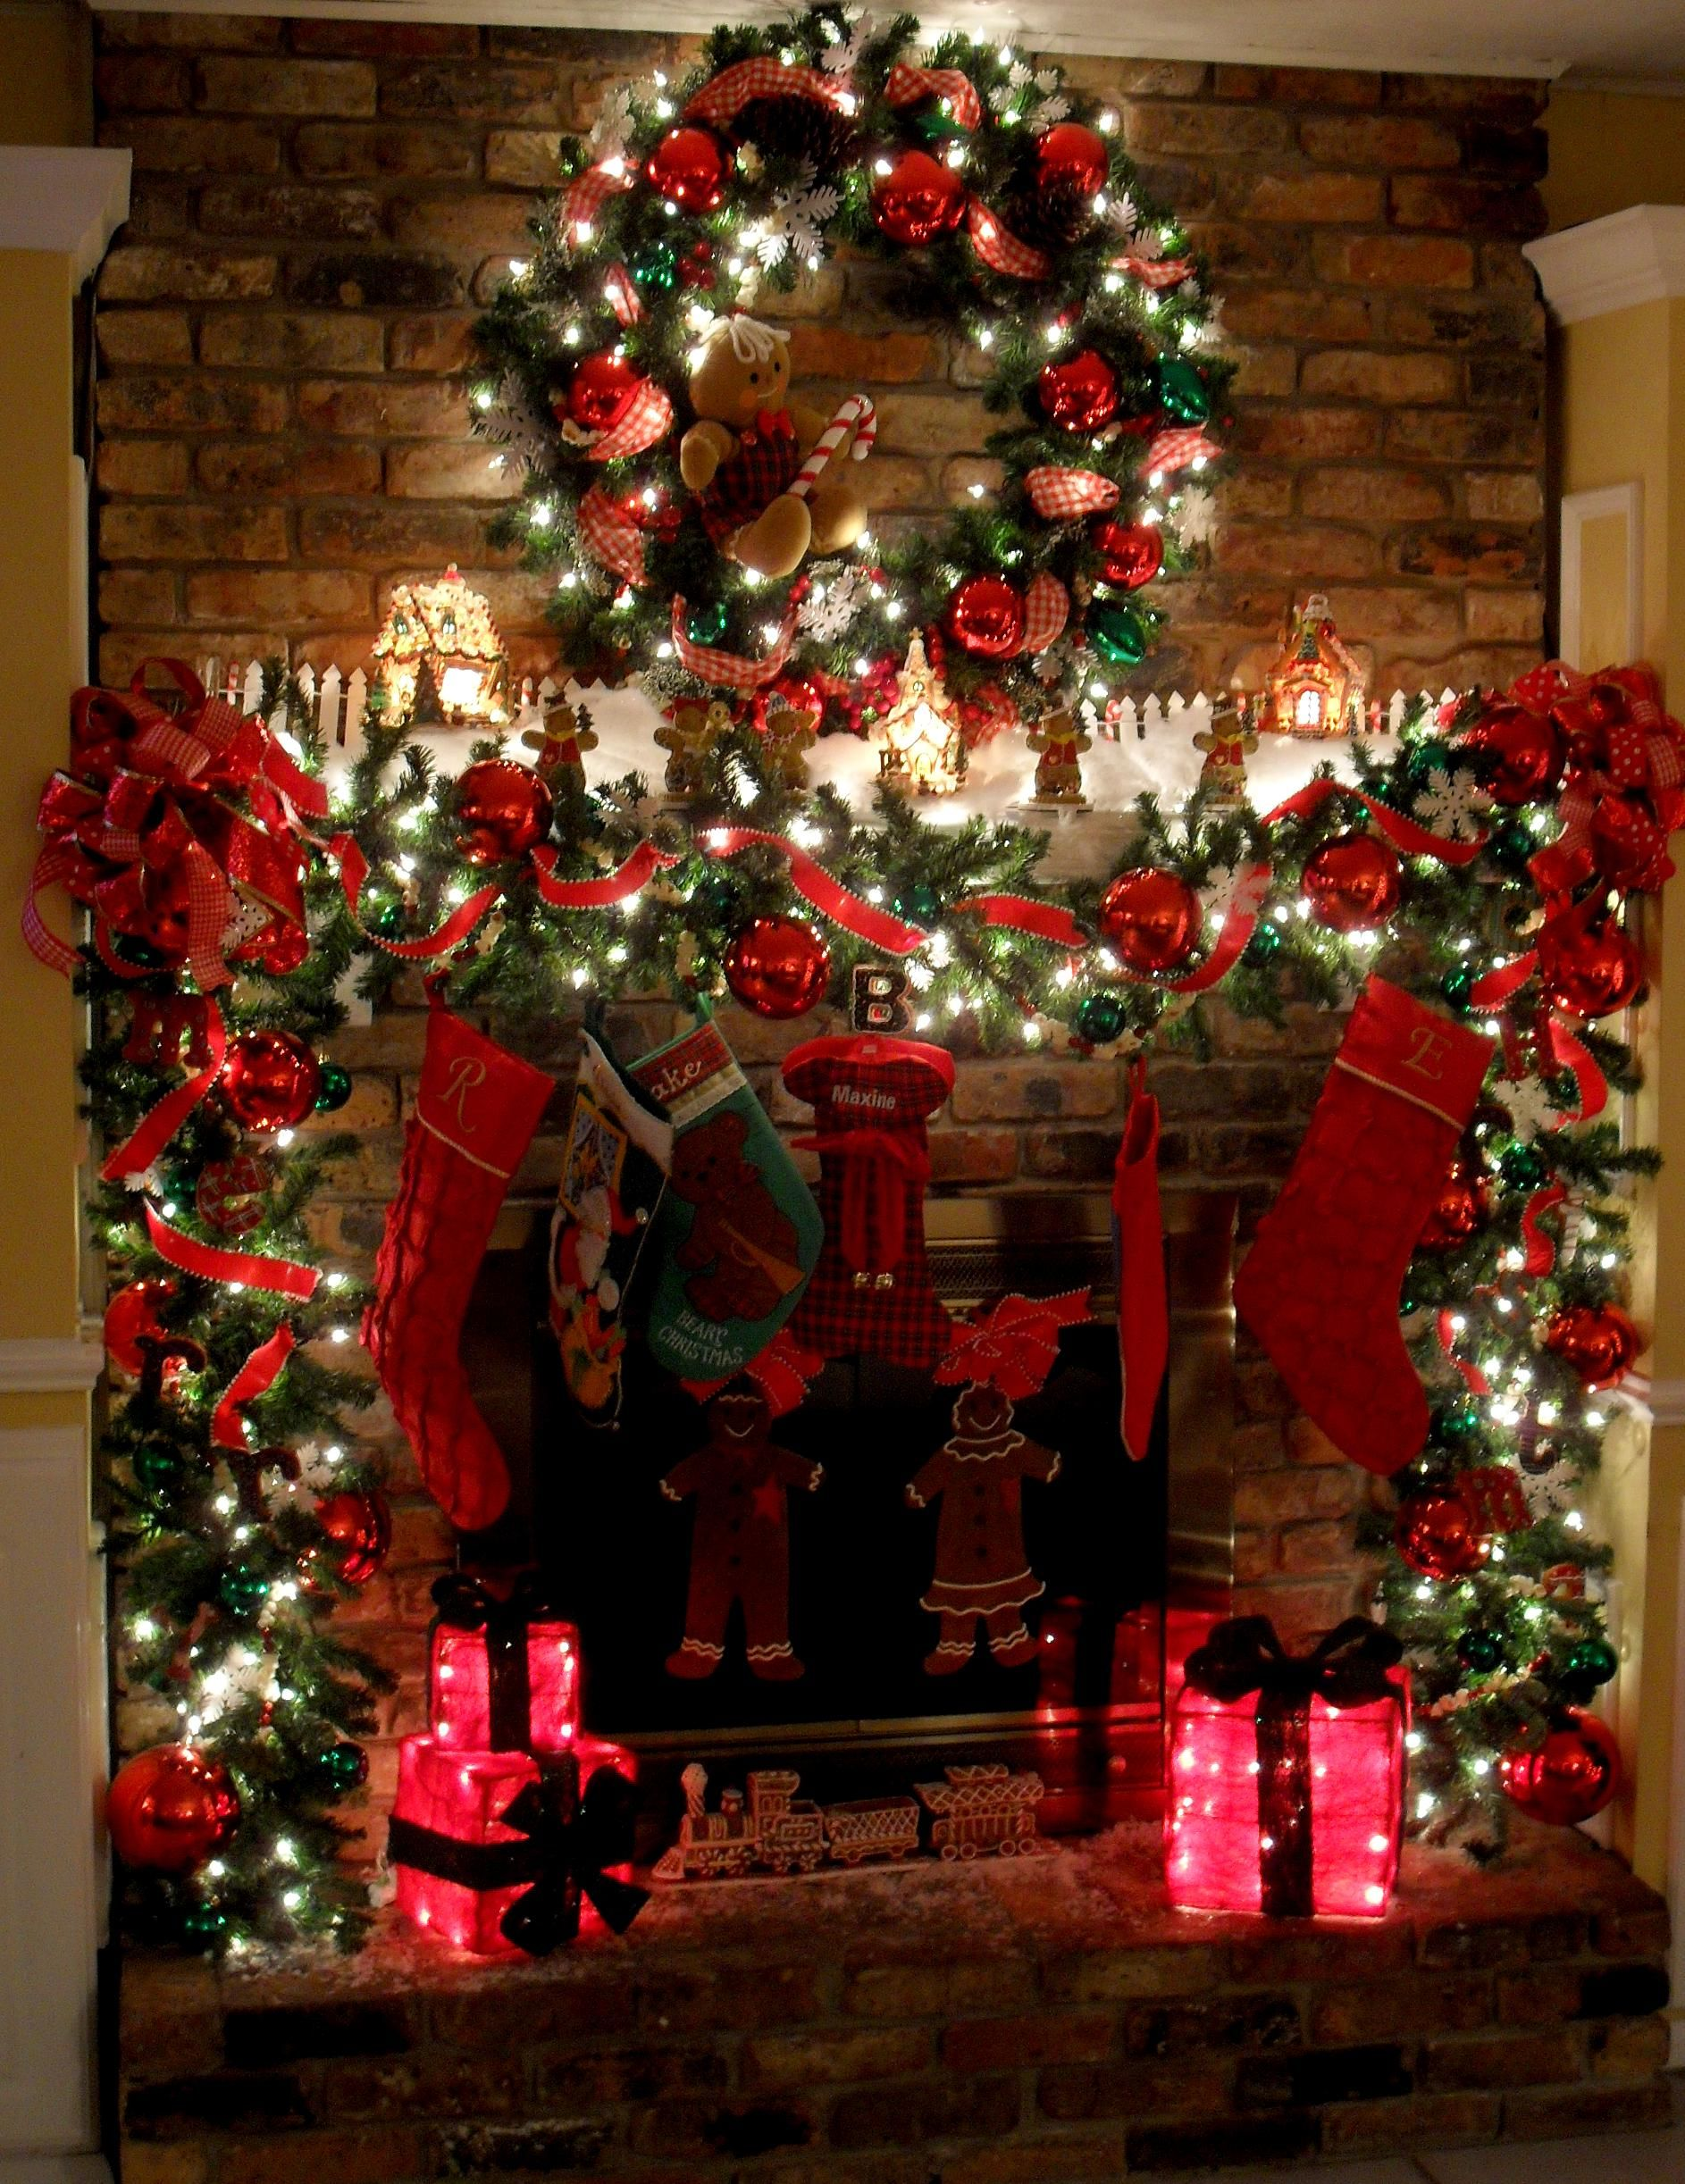 Pin by Moreen Jensen on Mantel design | Pinterest | Christmas ...